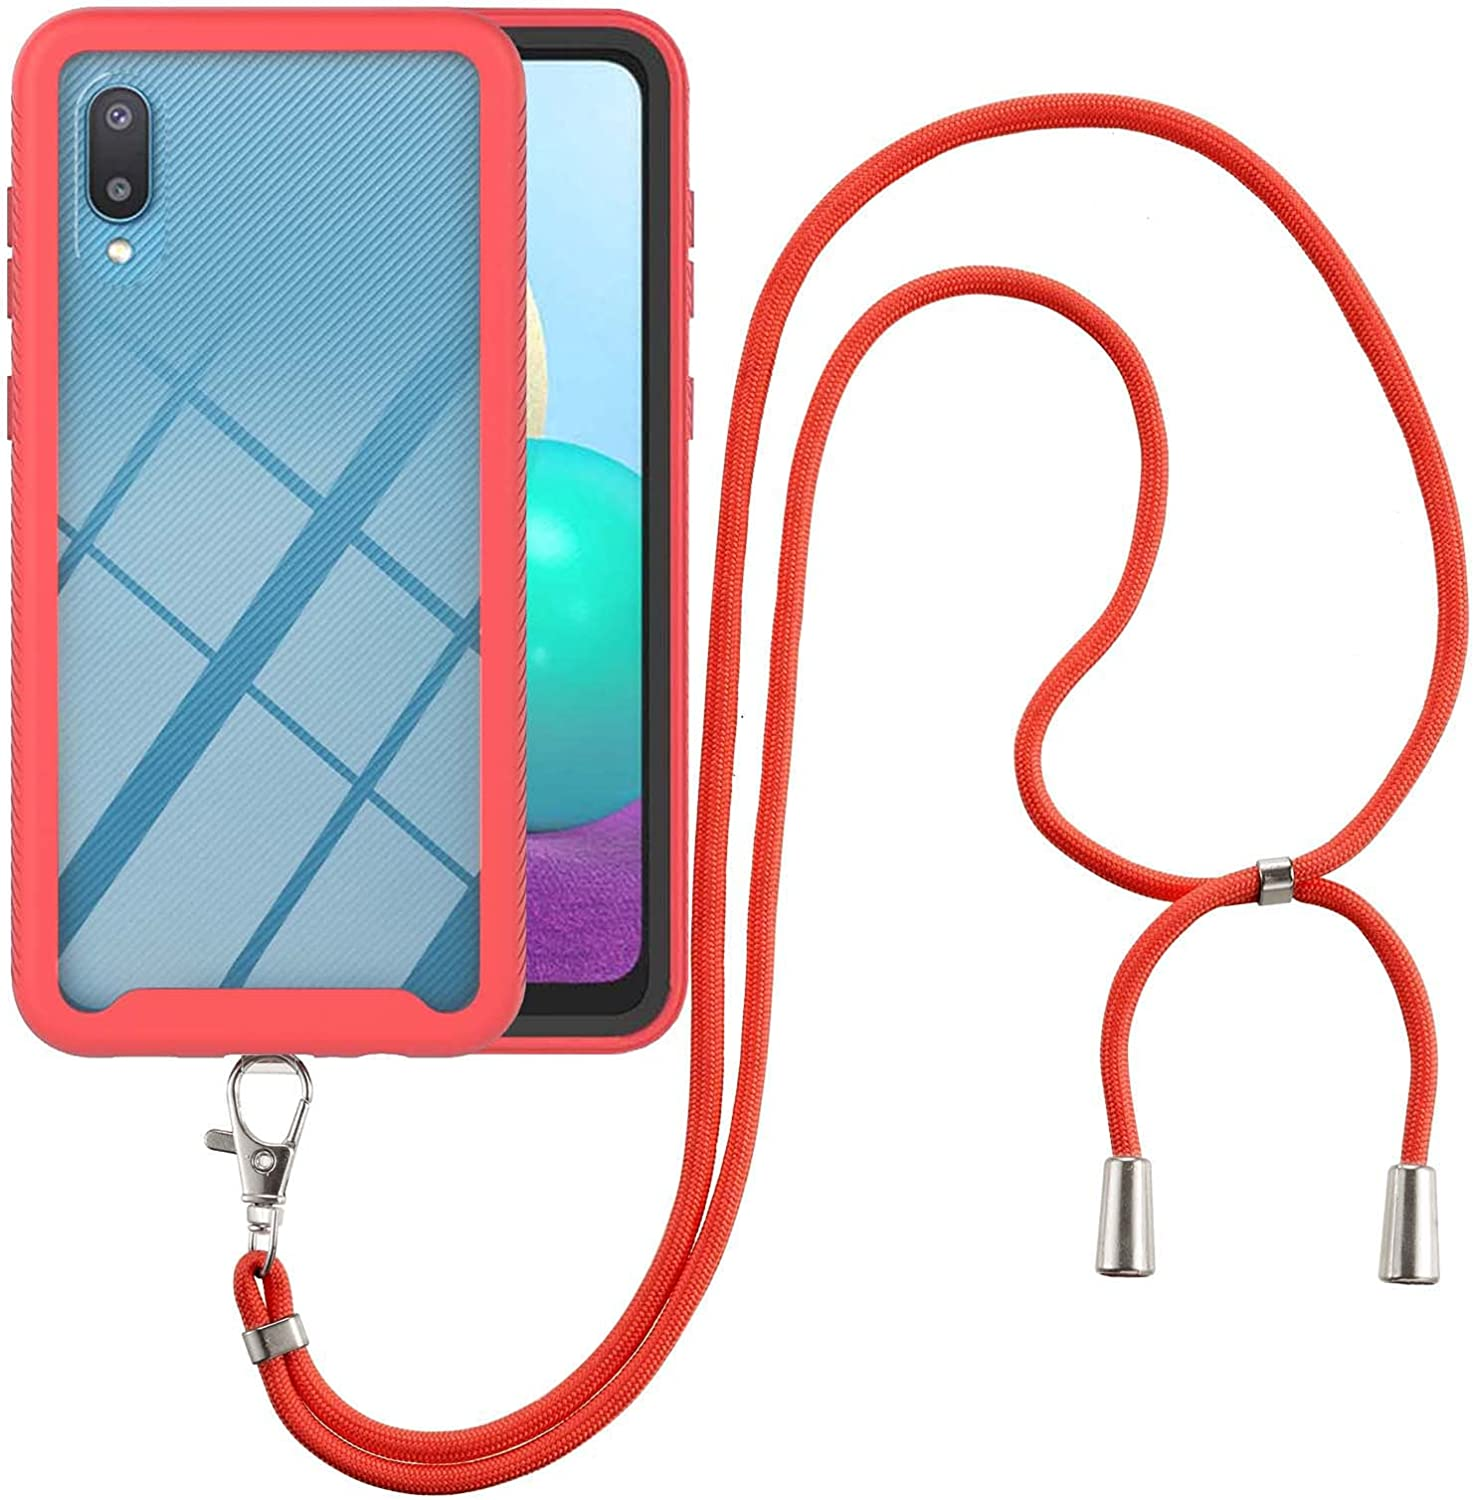 Samsung A02 Case, EabHulie Transparent Back No-Slip Bumper with Adjustable Crossbody Lanyard Strap Case, Shockproof Full Body Protection Cover for Samsung Galaxy A02 Red